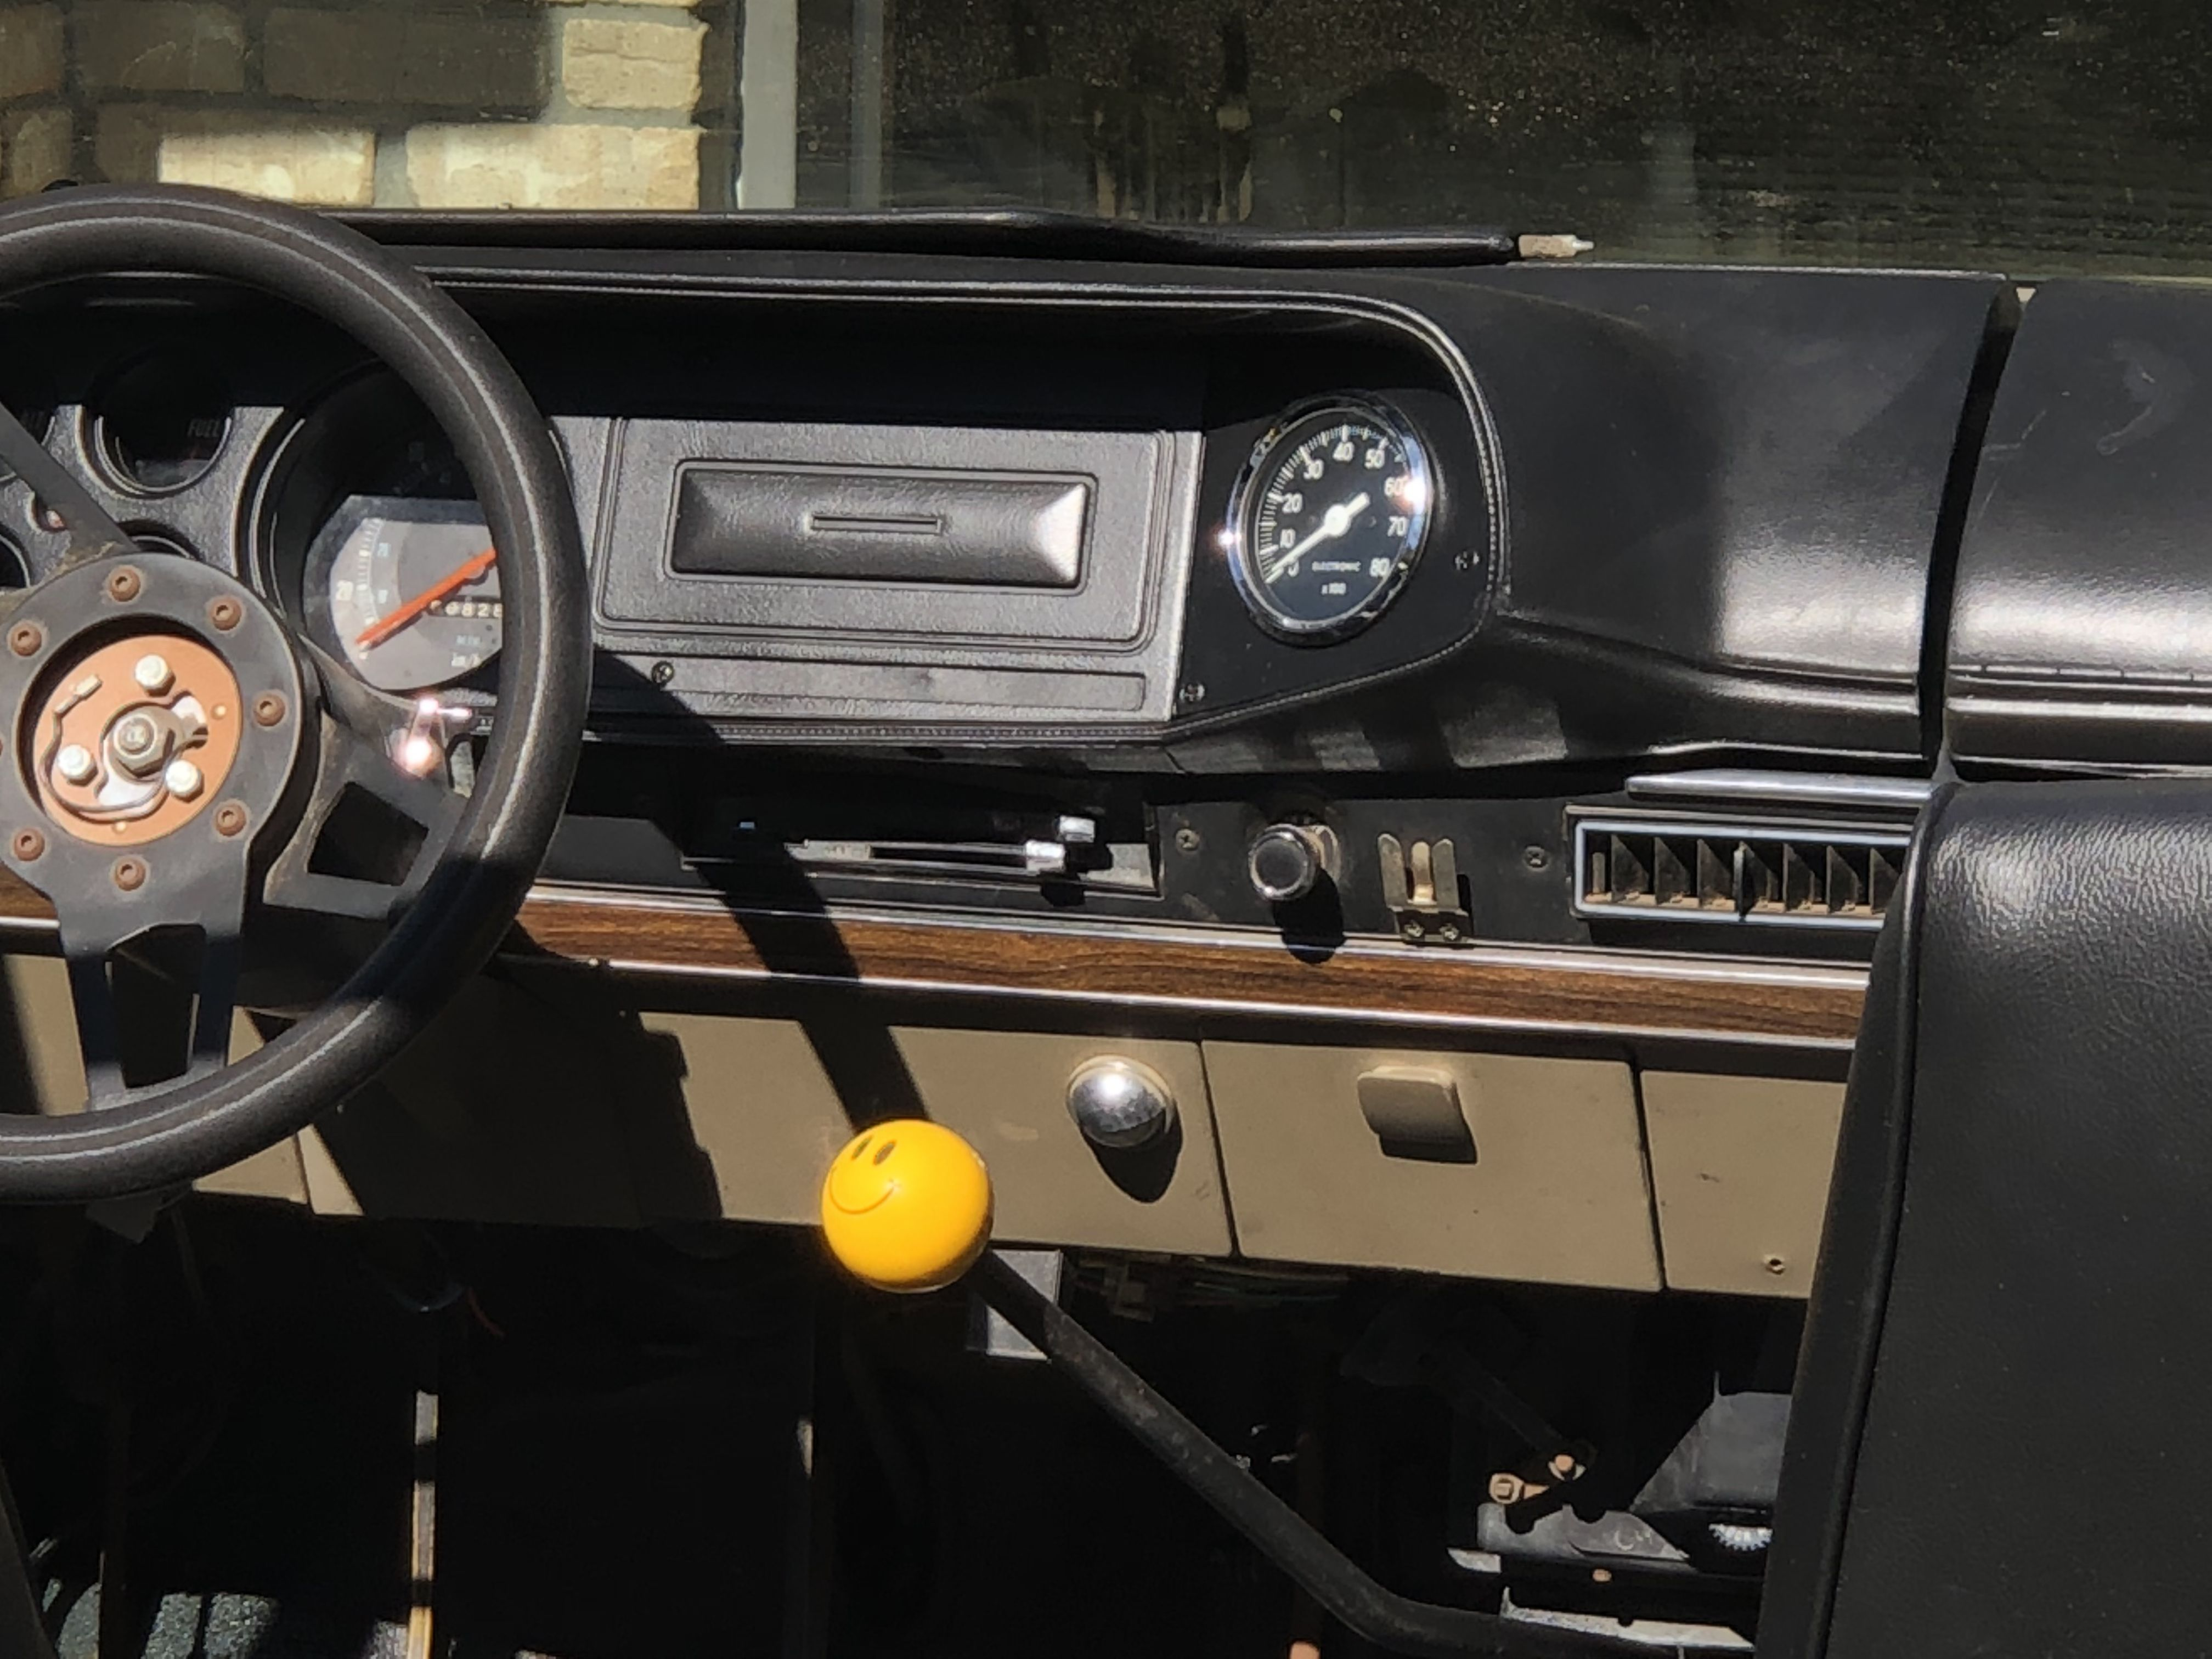 Pin By Trent Roth On Dodge Ramcharger Dodge Ramcharger Chevy Trucks Dodge Trucks